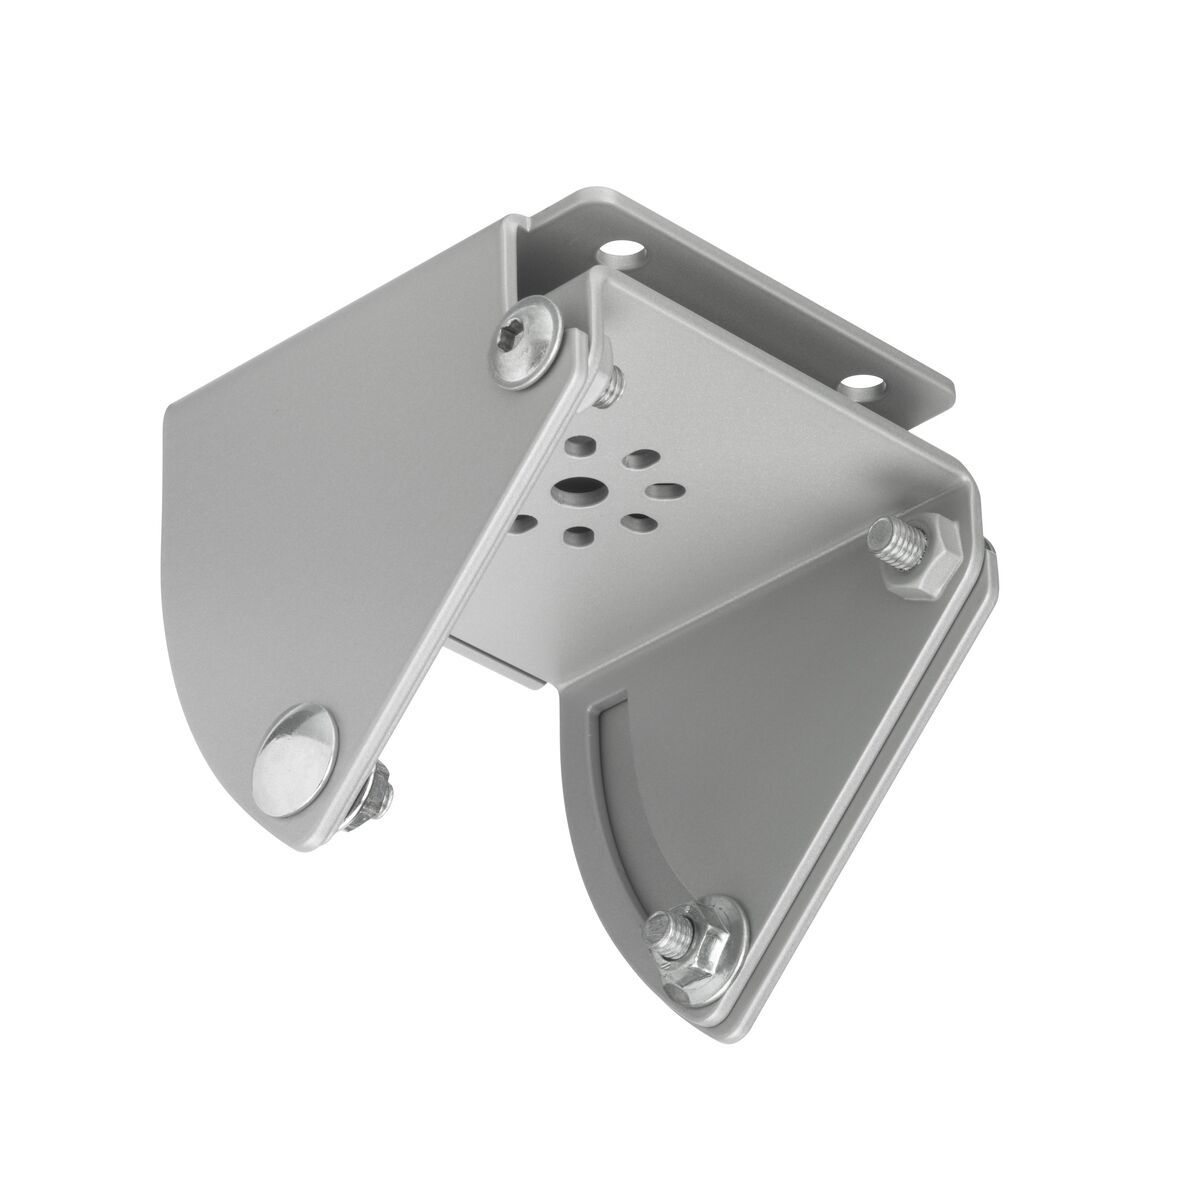 Vogel's PUC 1030 Ceiling plate turn and tilt - Product